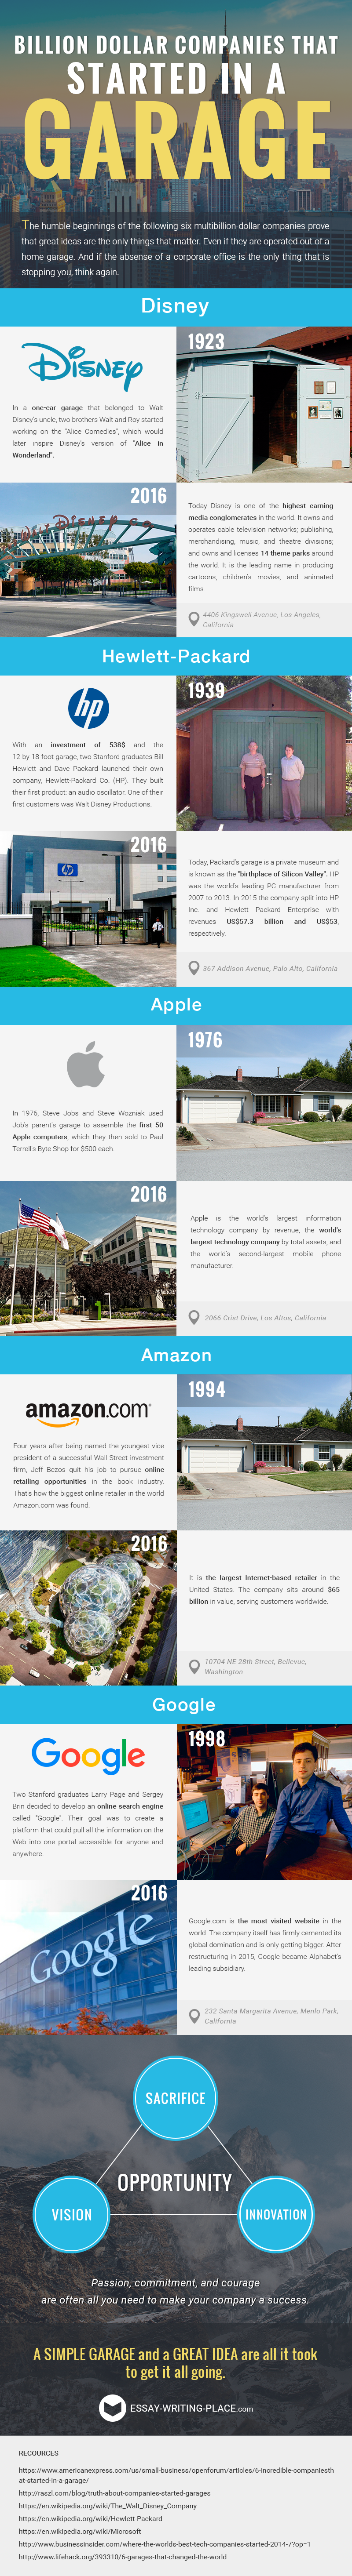 Billion Dollar Companies That Started in Garage #Infographic